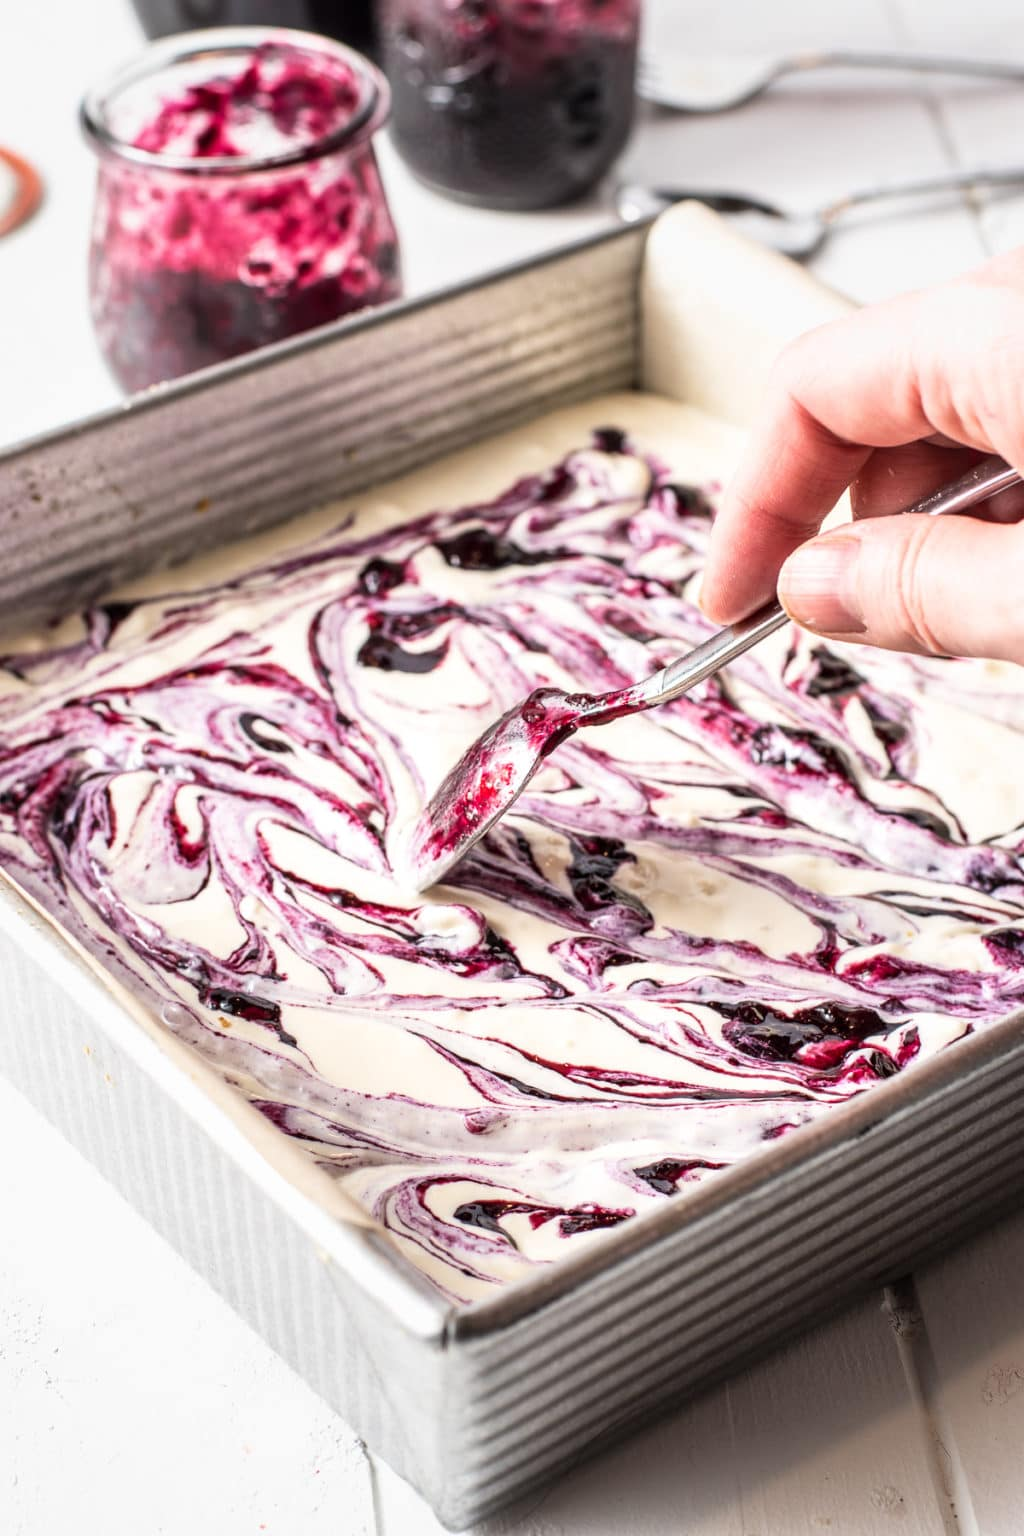 A spoon swirling bright purple blueberry puree through cheesecake batter